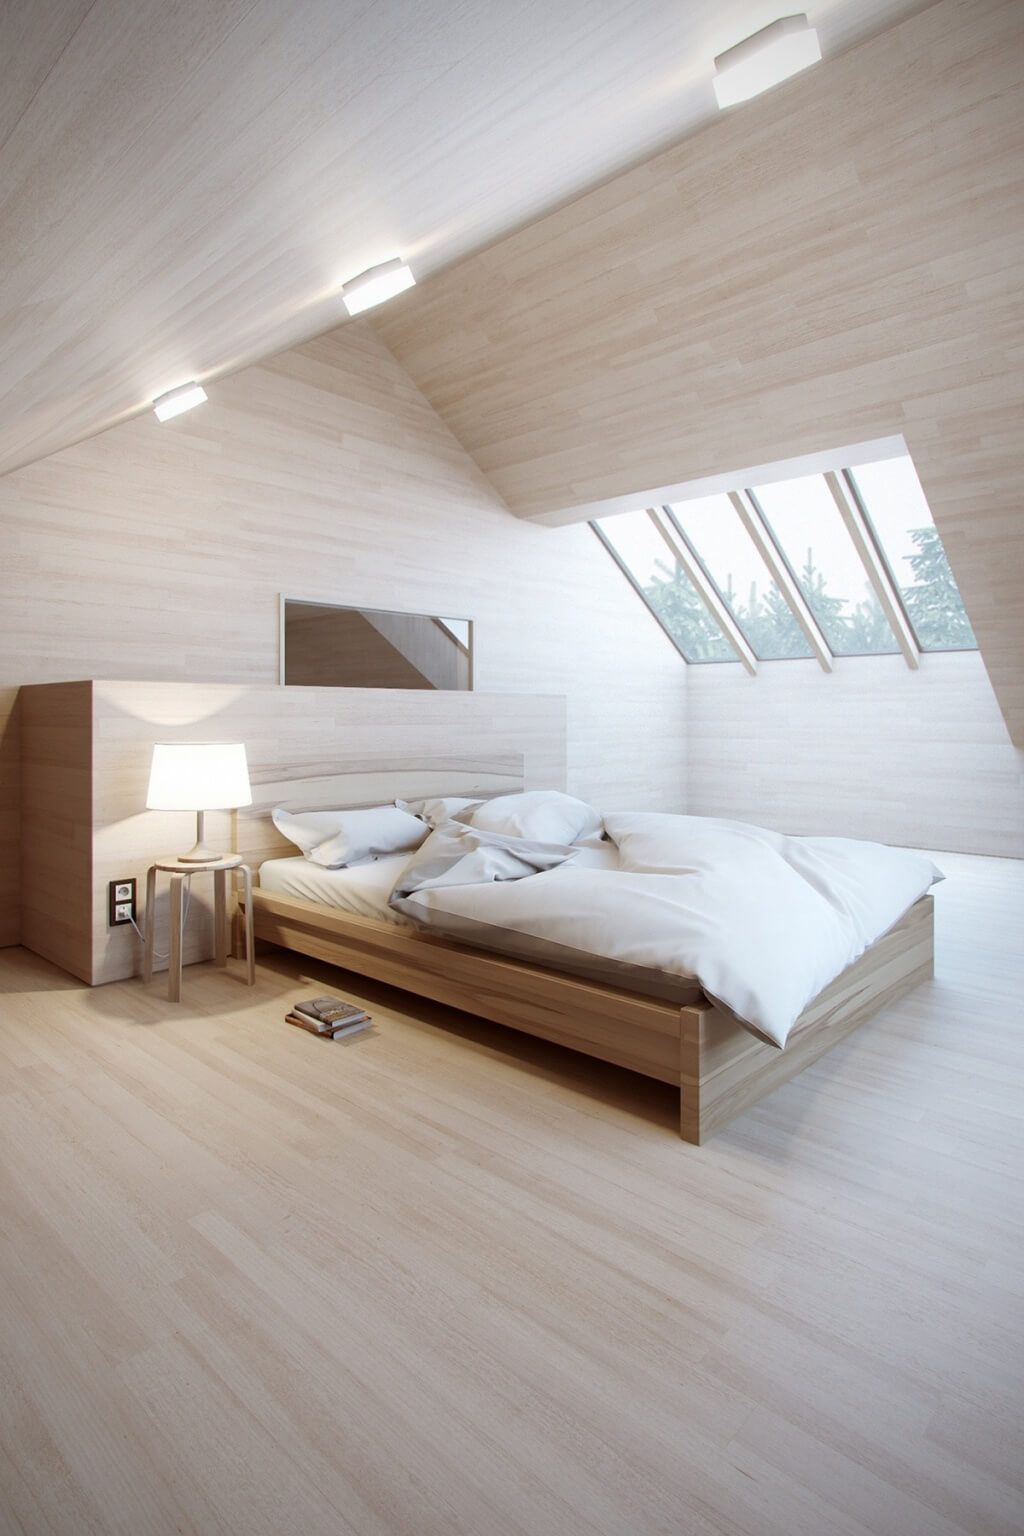 10 Attic Bedroom Ideas 2021 Creative And Awesome Attic Bedroom Designs Minimalist Bedroom Bedroom Design